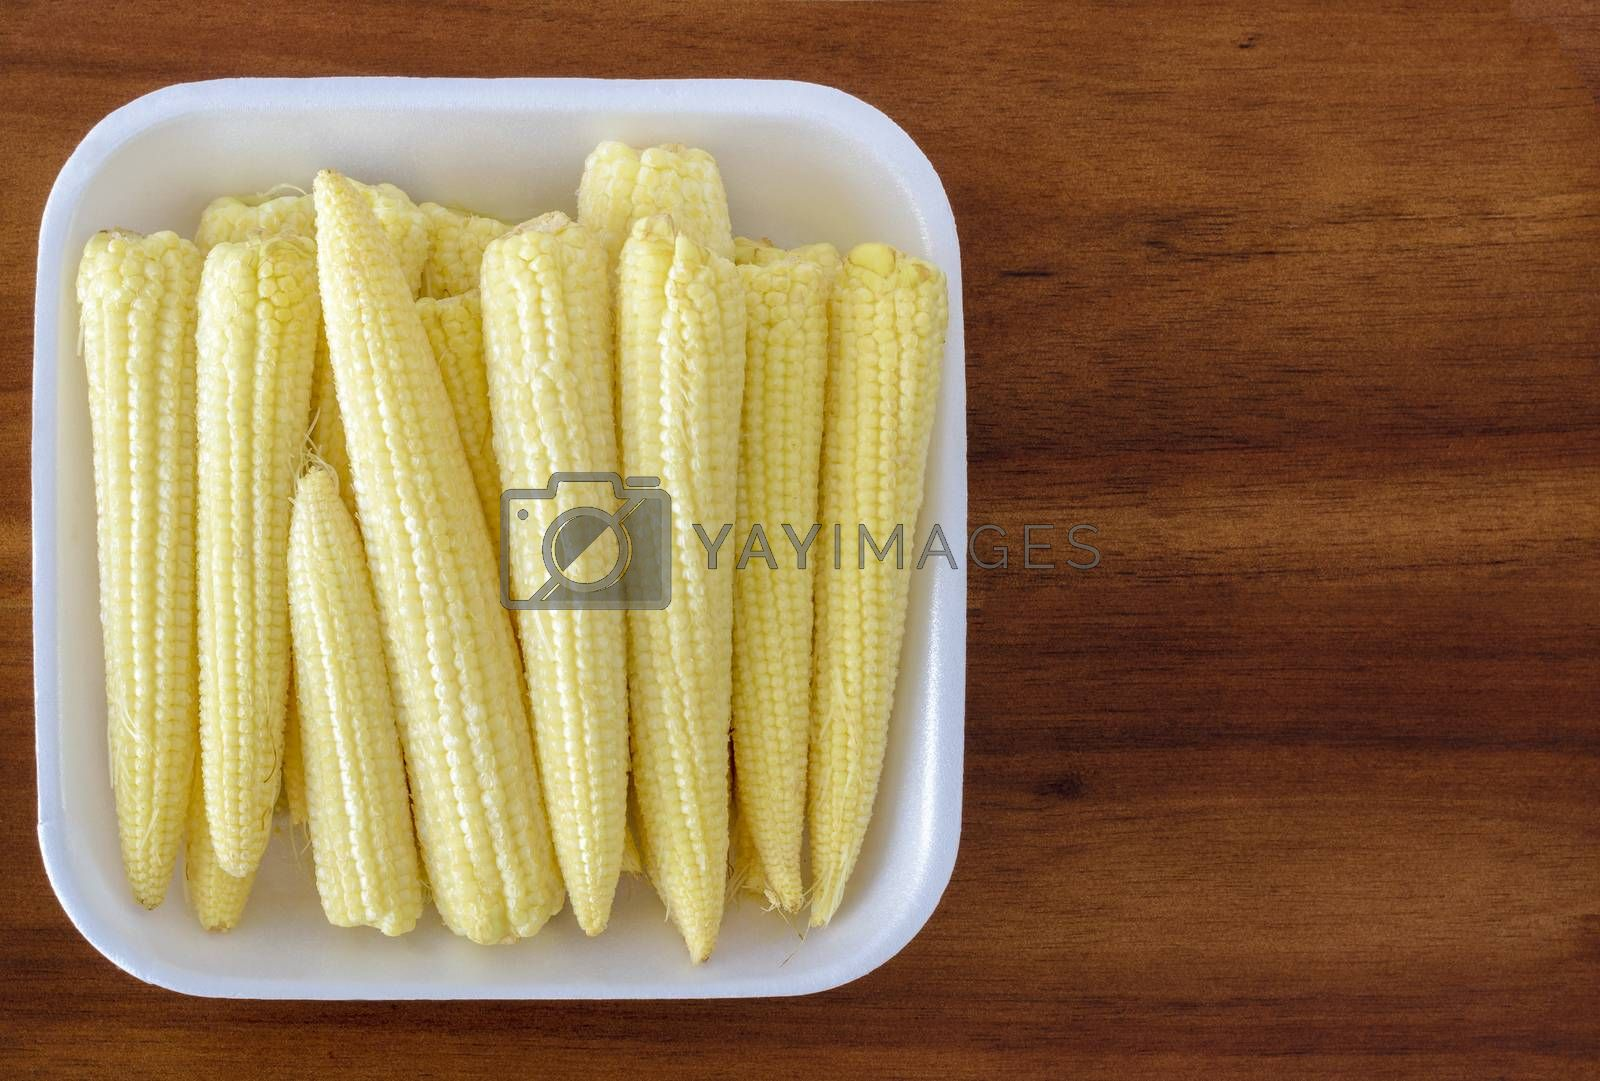 Dish containing a stack of baby corn cobs on a wooden background